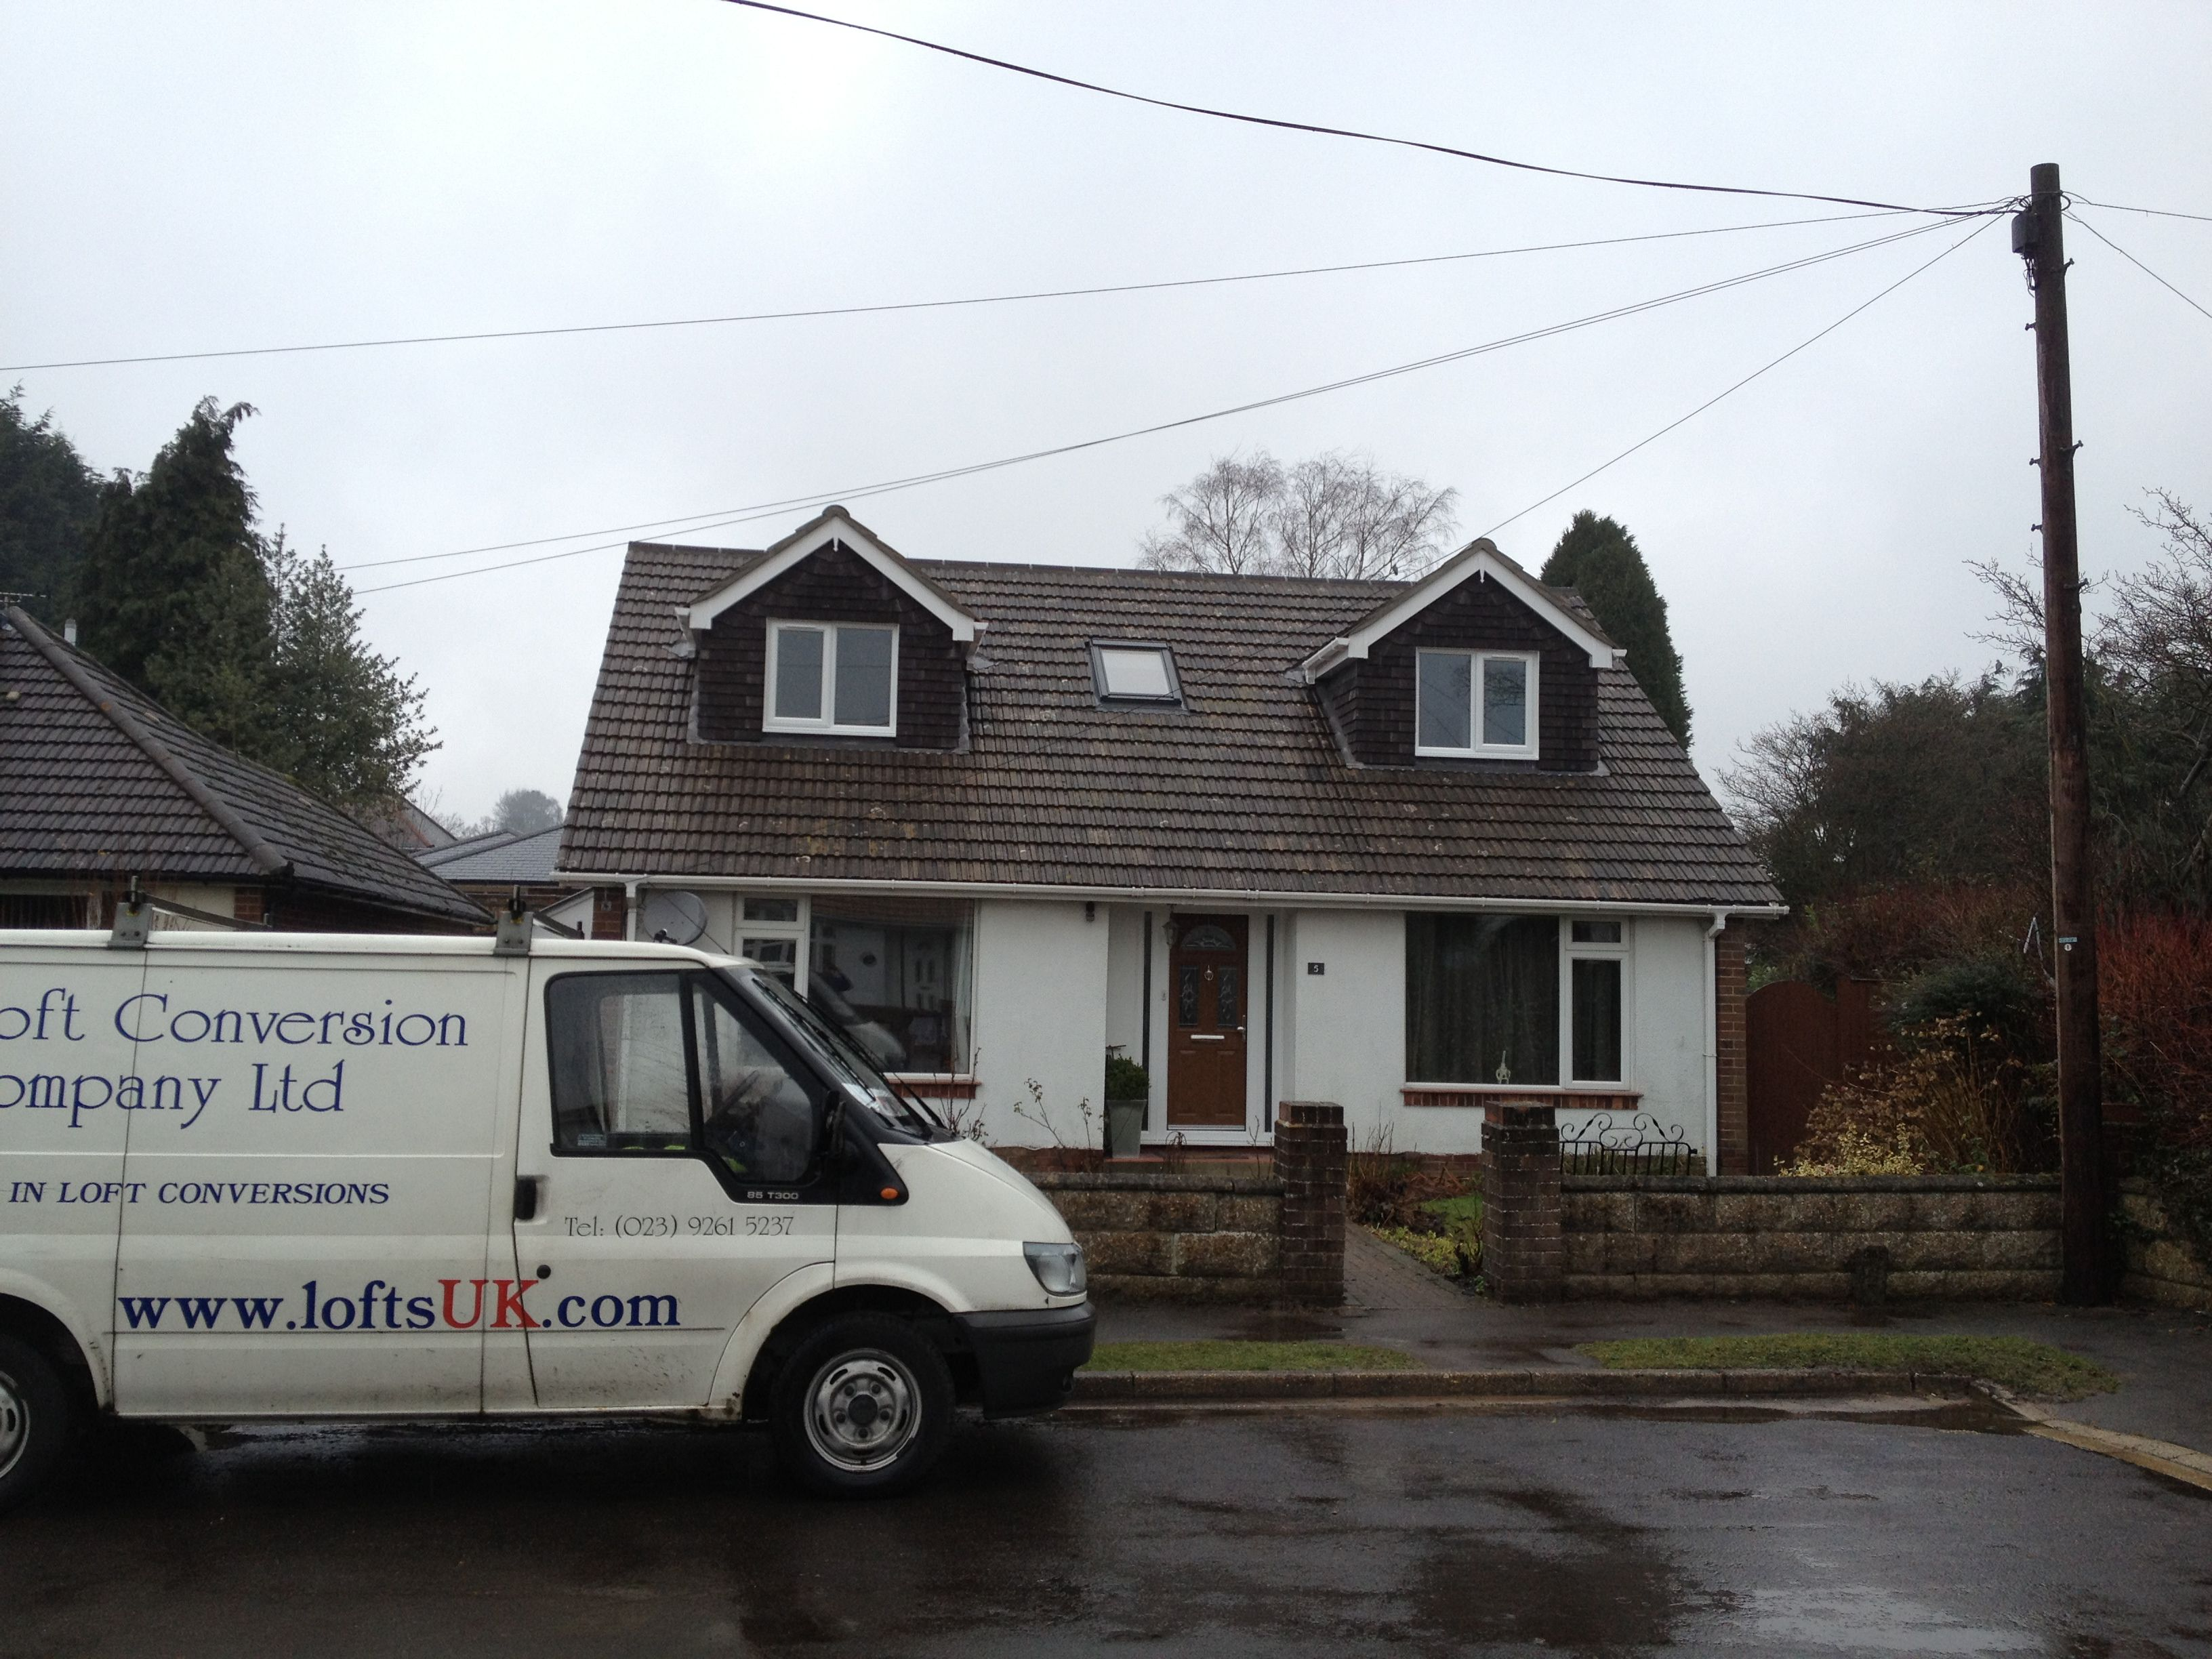 A Loft Conversion To A Bungalow In The Portsmouth Area Dormers Gable With Images Loft Conversion Loft Conversion Design Loft